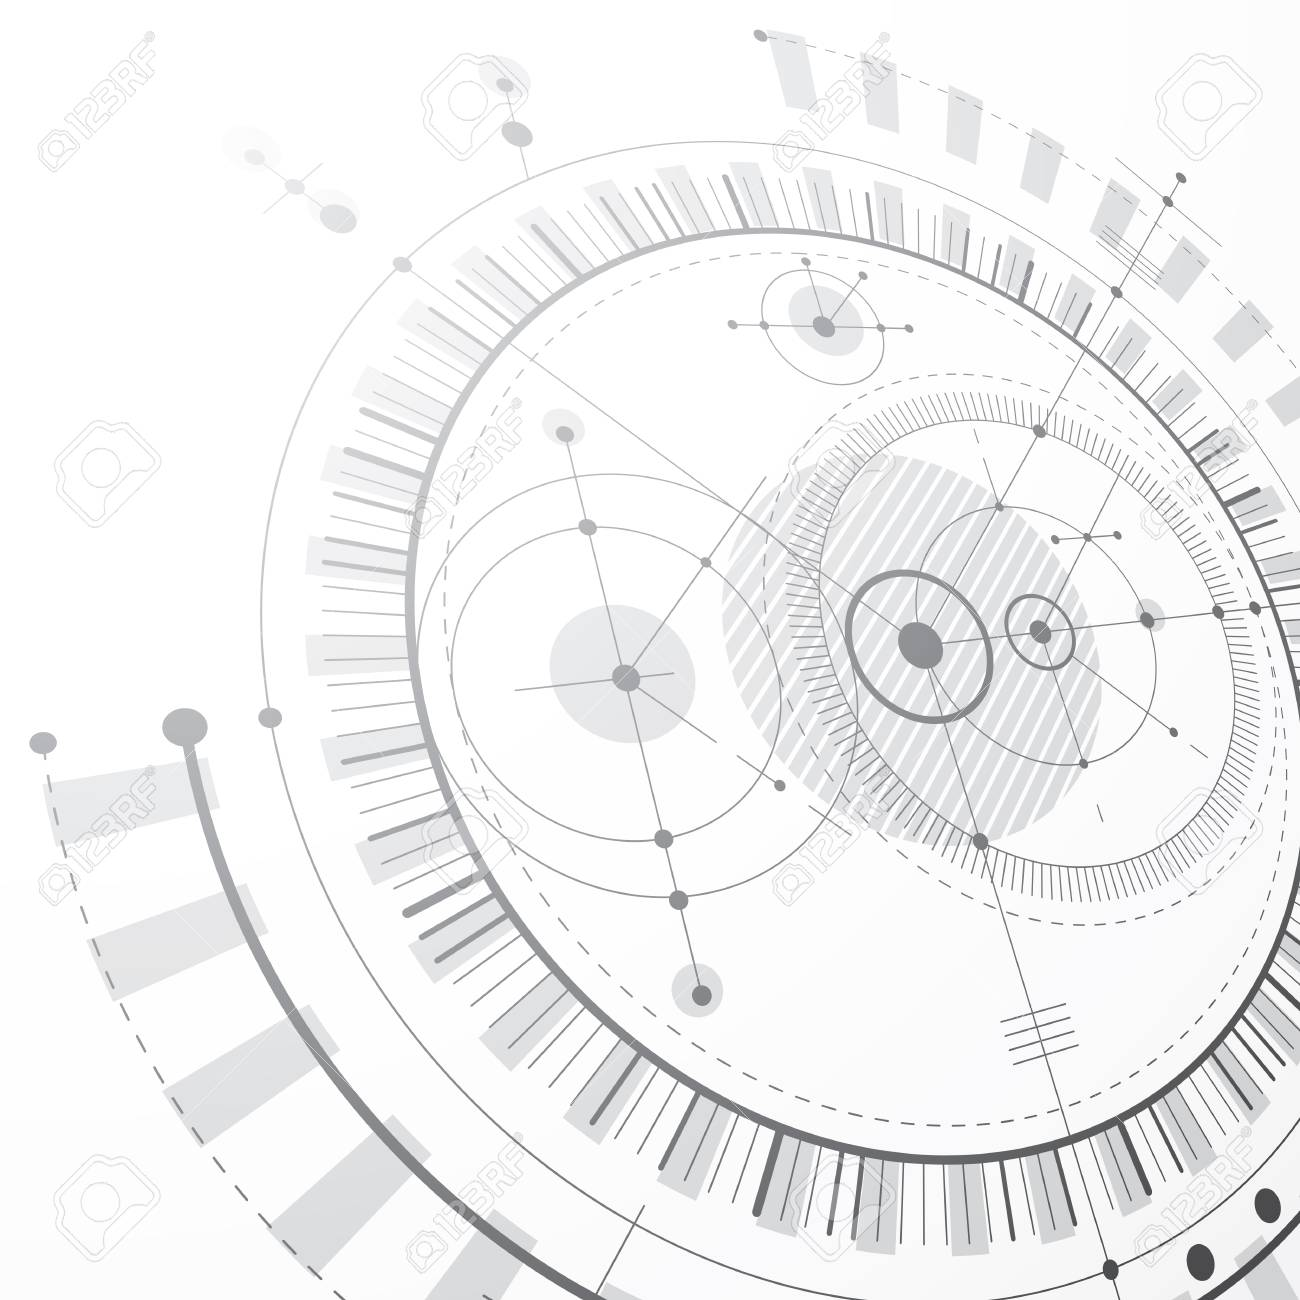 1300x1300 Technical Plan, Black And White Abstract Engineering Draft